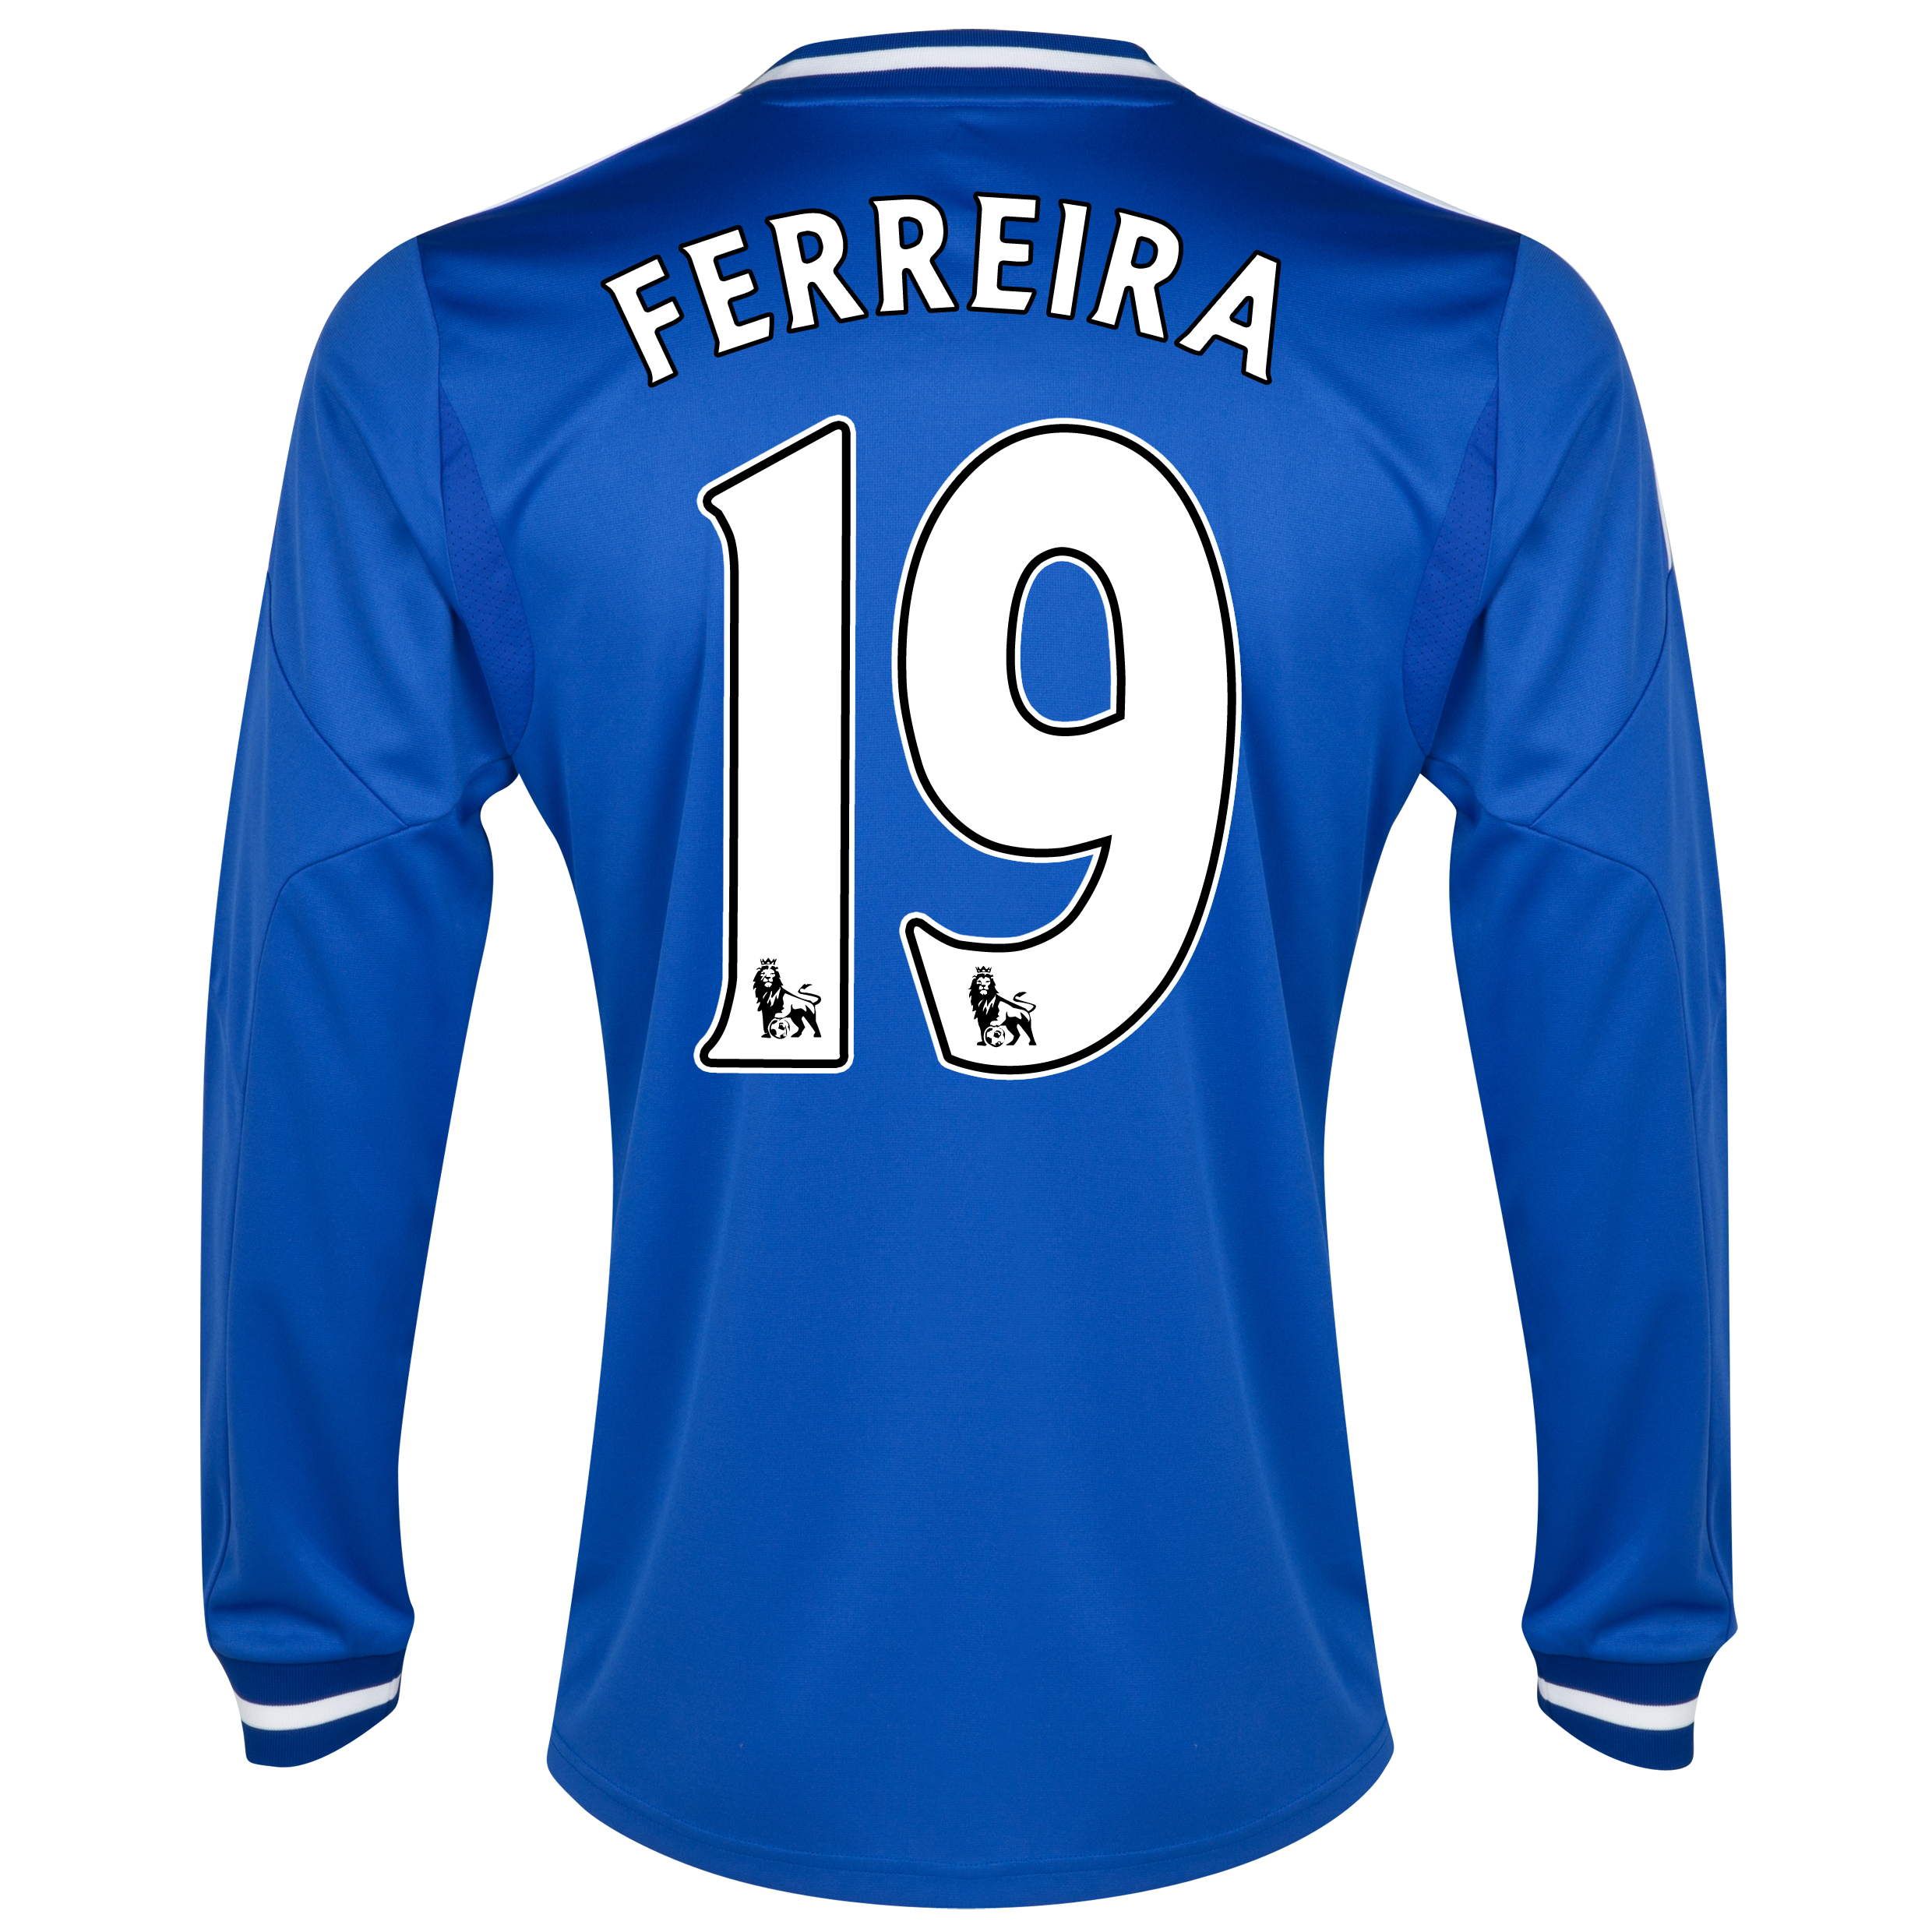 Chelsea Home Shirt 2013/14 - Long Sleeve with Ferreira 19 printing